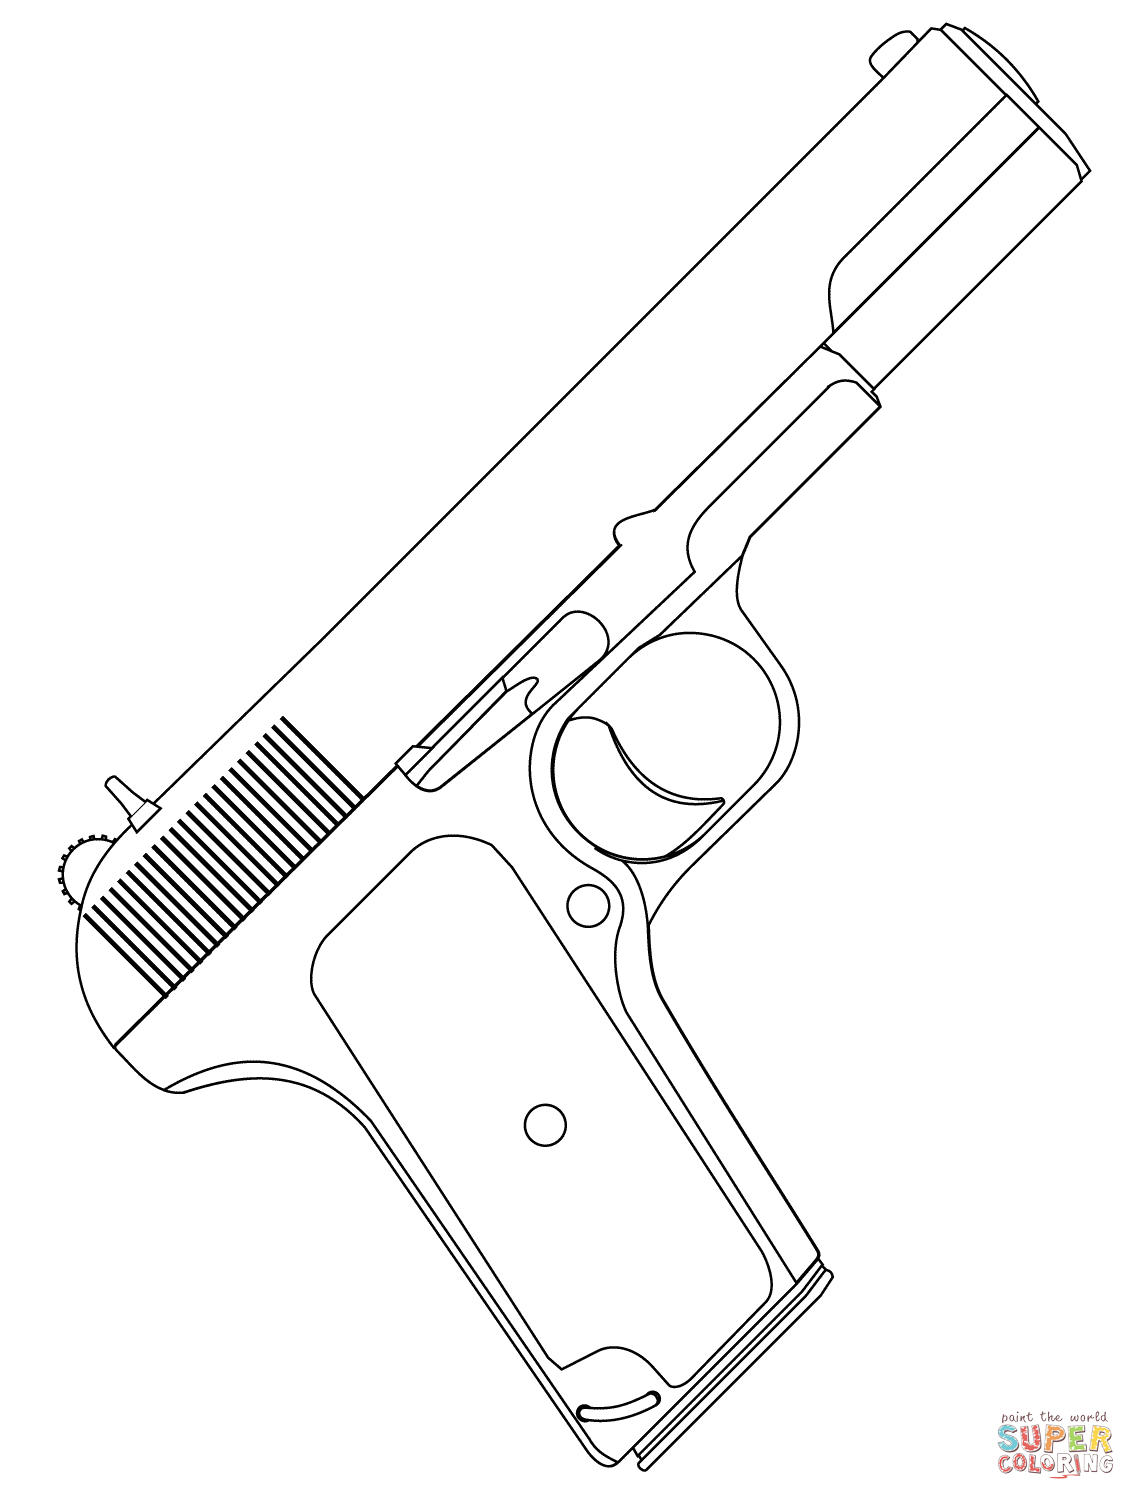 Handgun Coloring Page Free Printable Coloring Pages